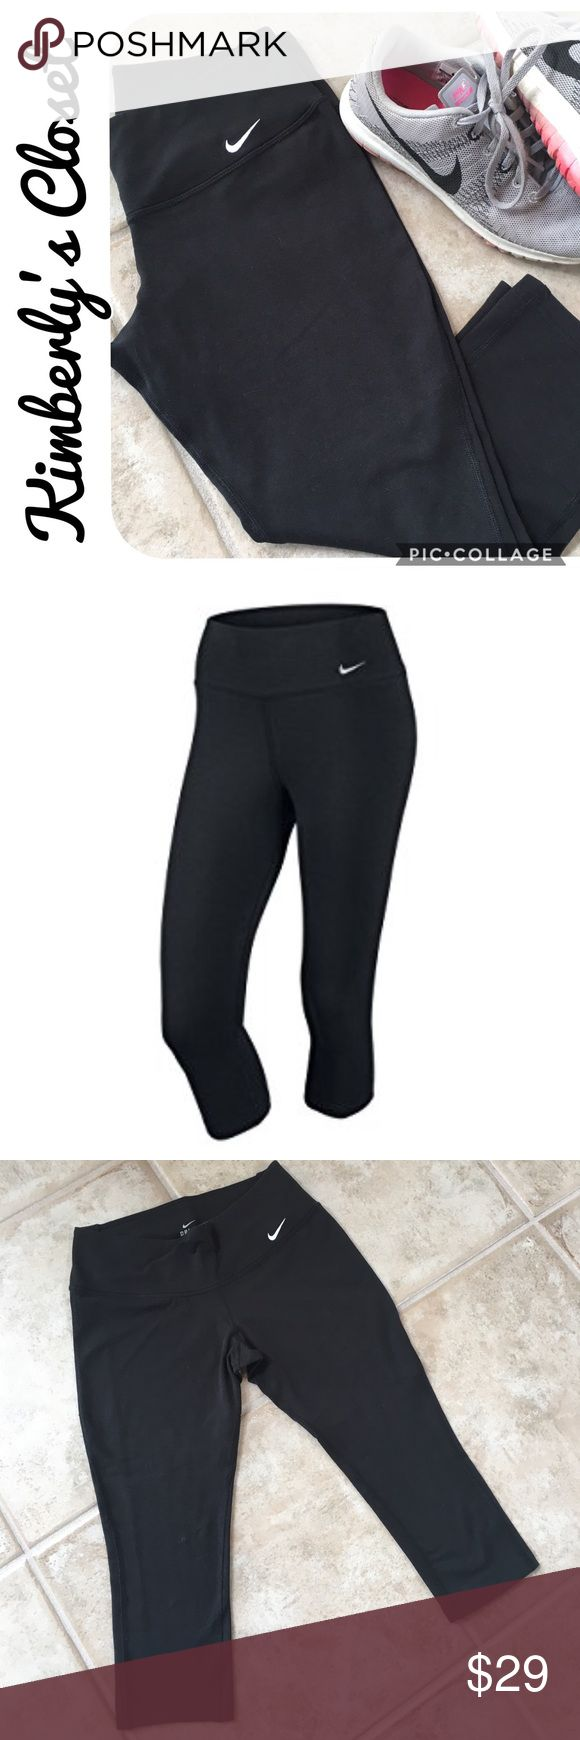 "🛍NIKE Dri-Fit Capri Leggings🛍 The Nike Dri-Fit Capri Tights are designed with great fit and comfort in mind. Lightweight and breathable, these women's training capris were designed with the environment in mind. They feature sweat-wicking Dri-FIT fabric to help keep you dry and comfortable. While Spandex in the fabric enhances freedom of movement, and it's also brushed for a soft feel.  Inseam measures 18"". Gently used - very good condition. Nike Pants"